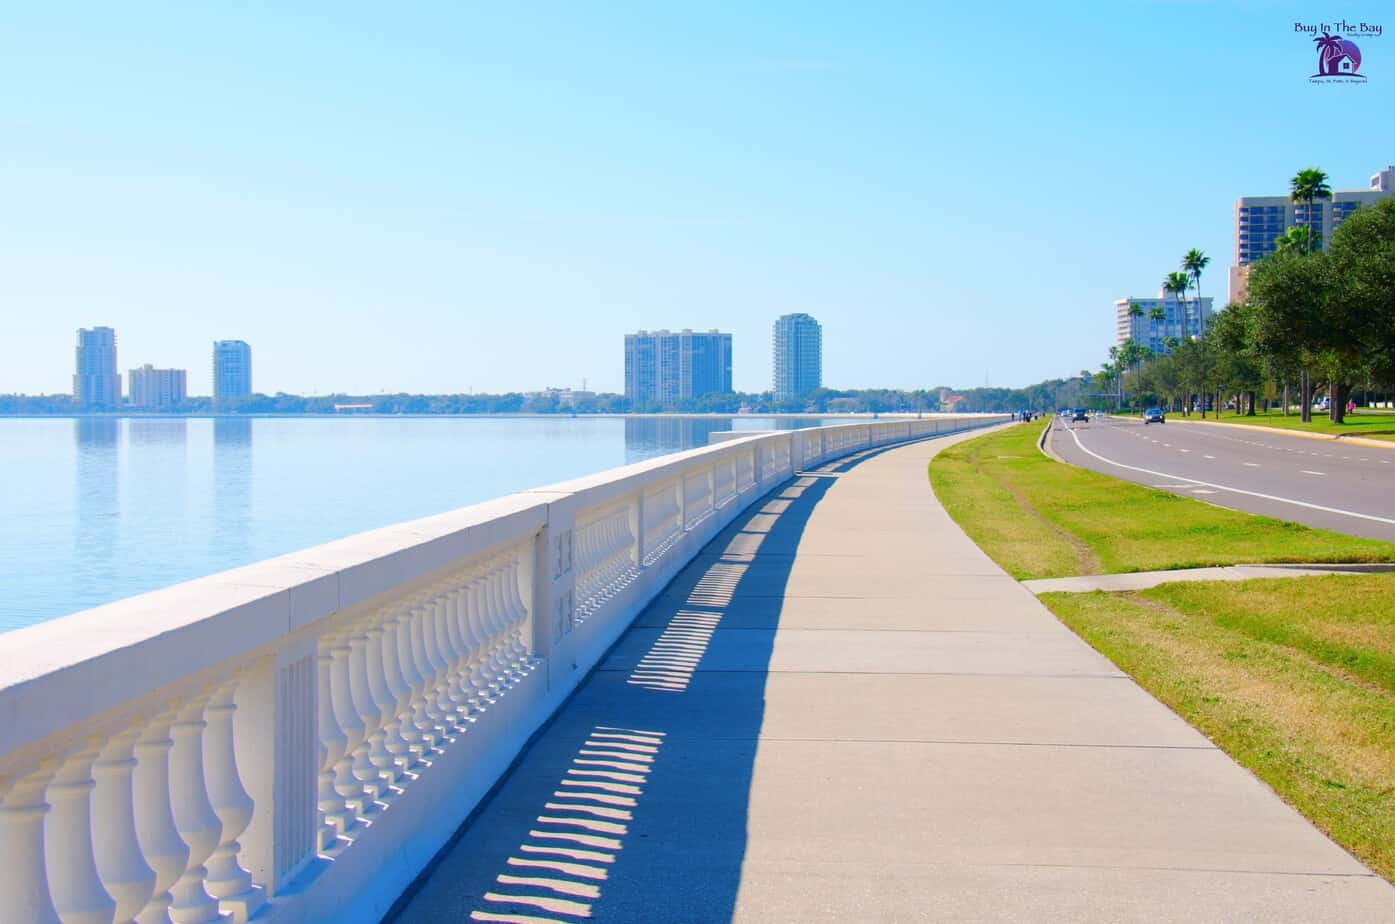 Bayshore Boulevard Tampa Sidewalk with a white fence and water view of tall buildings